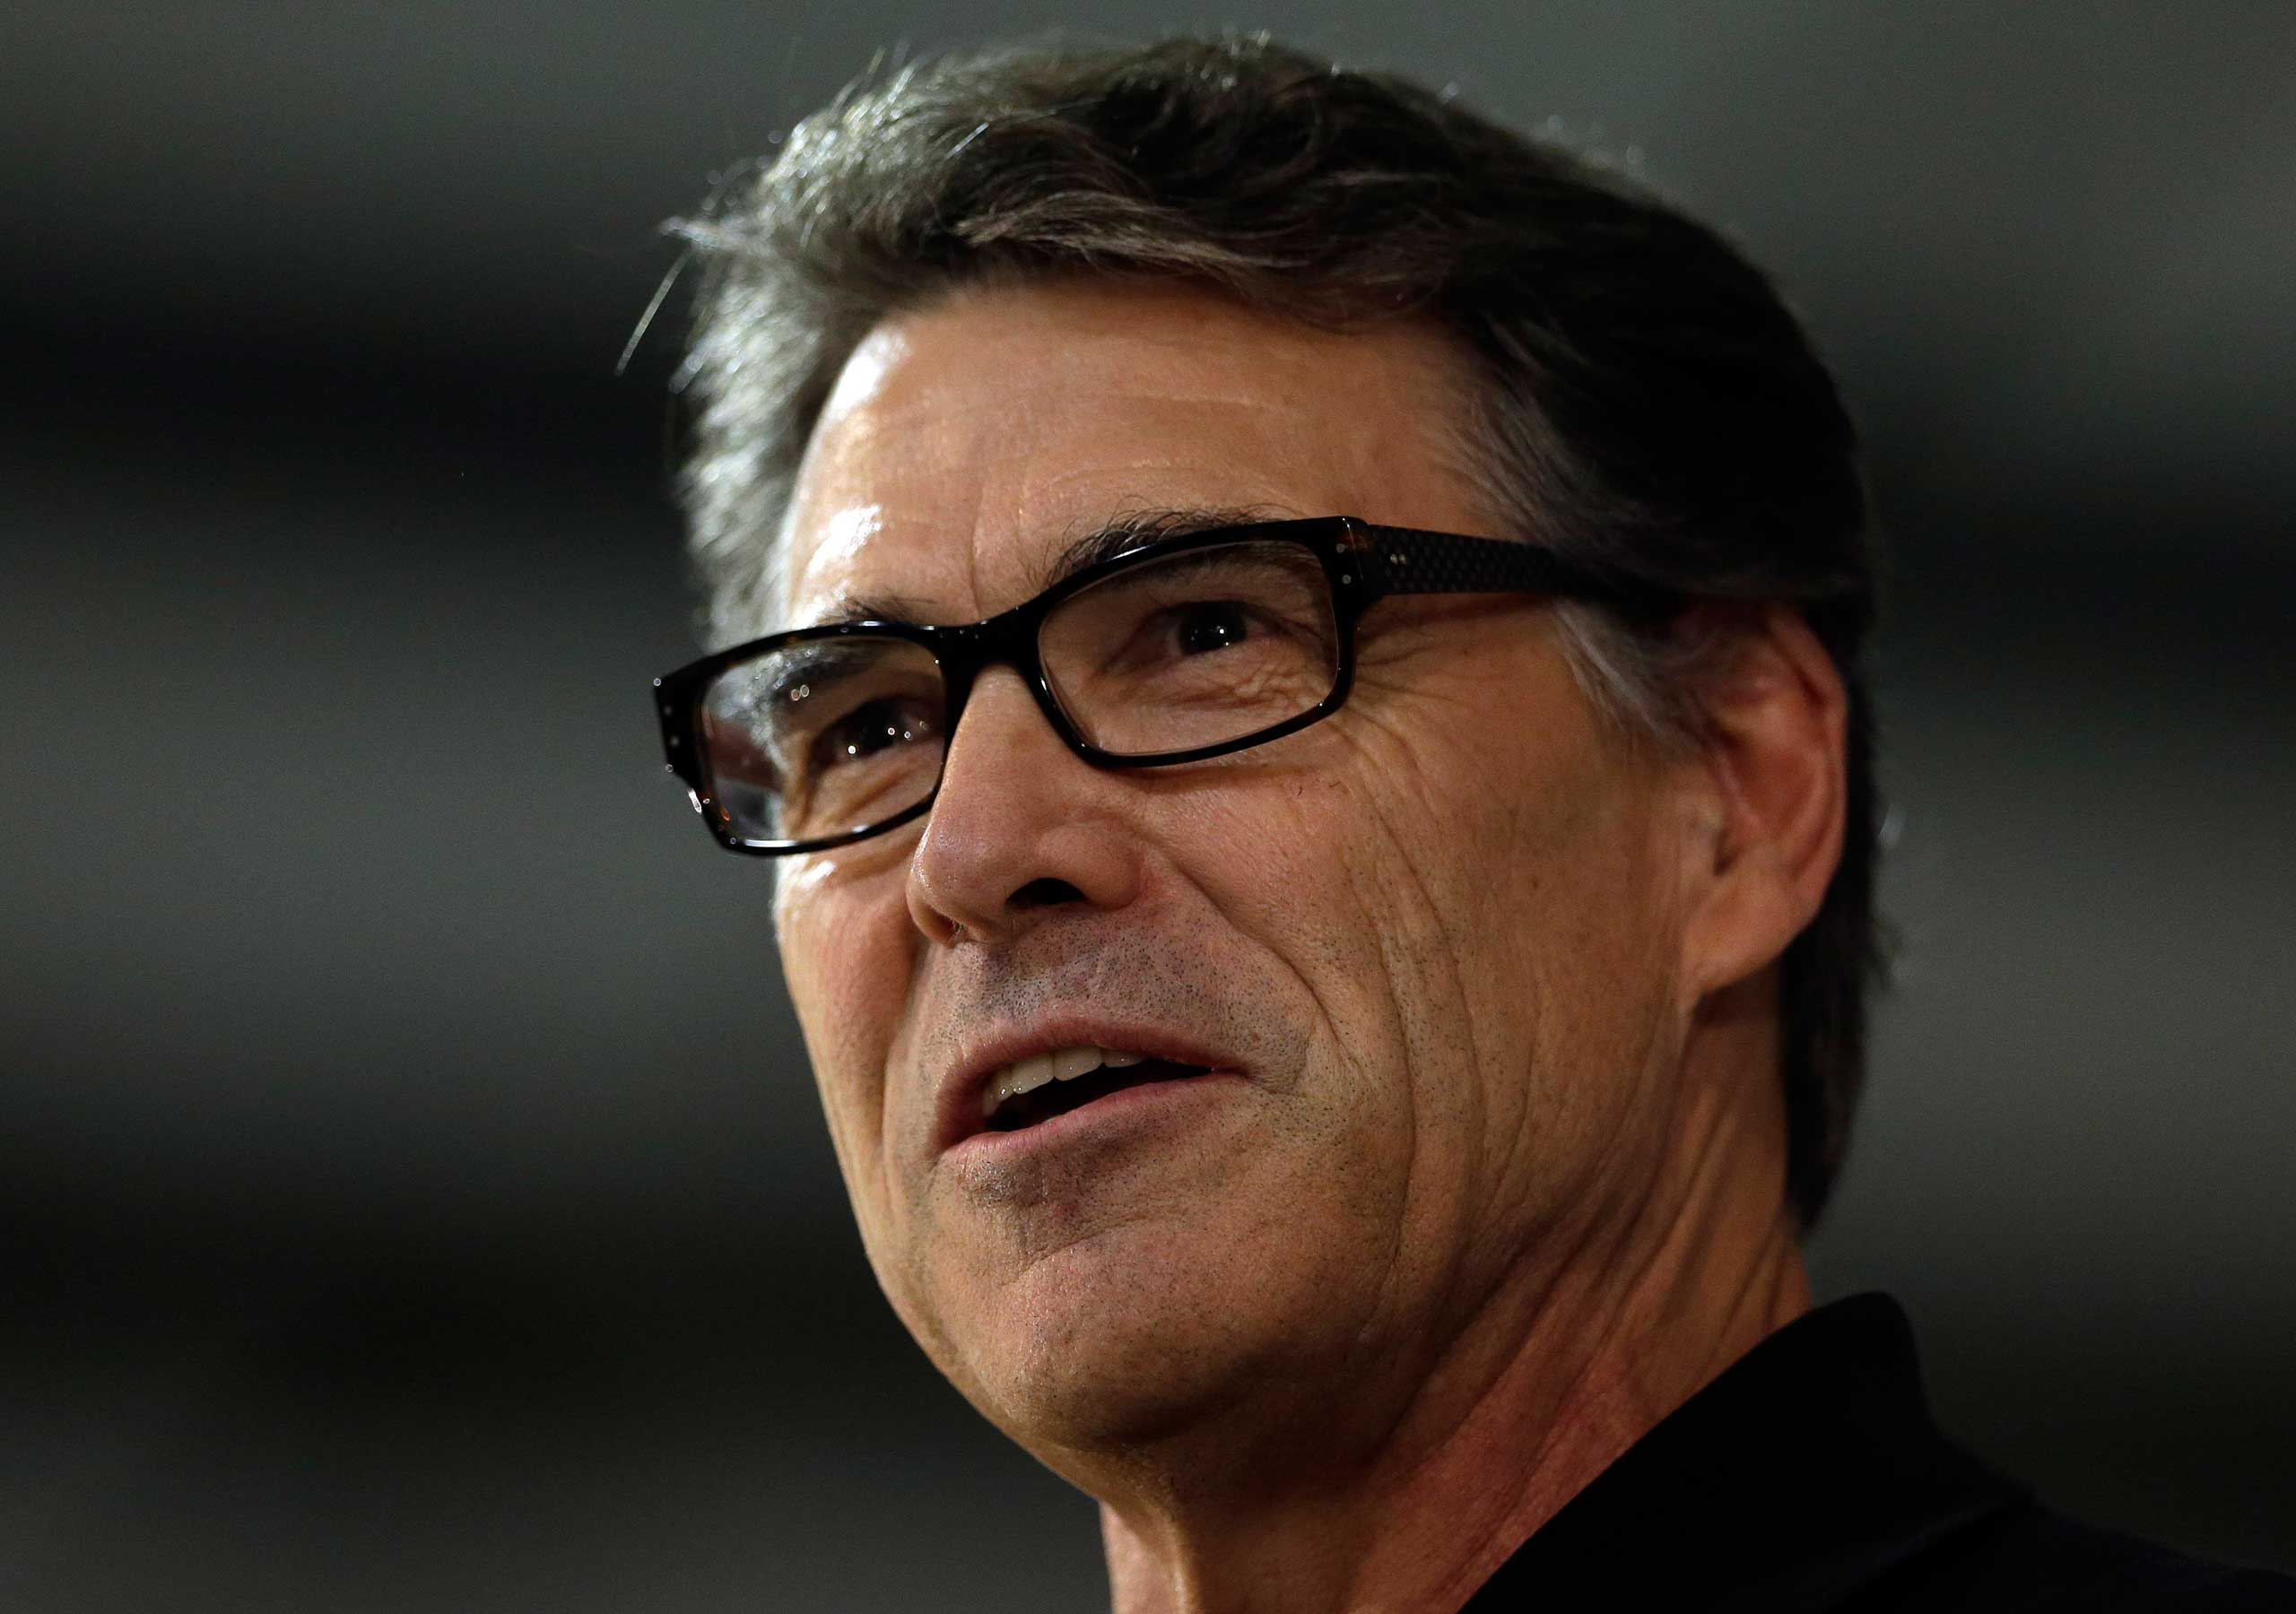 Texas Gov. Rick Perry speaks during a conservative rally in Smithfield, N.C. on Oct. 24, 2014.